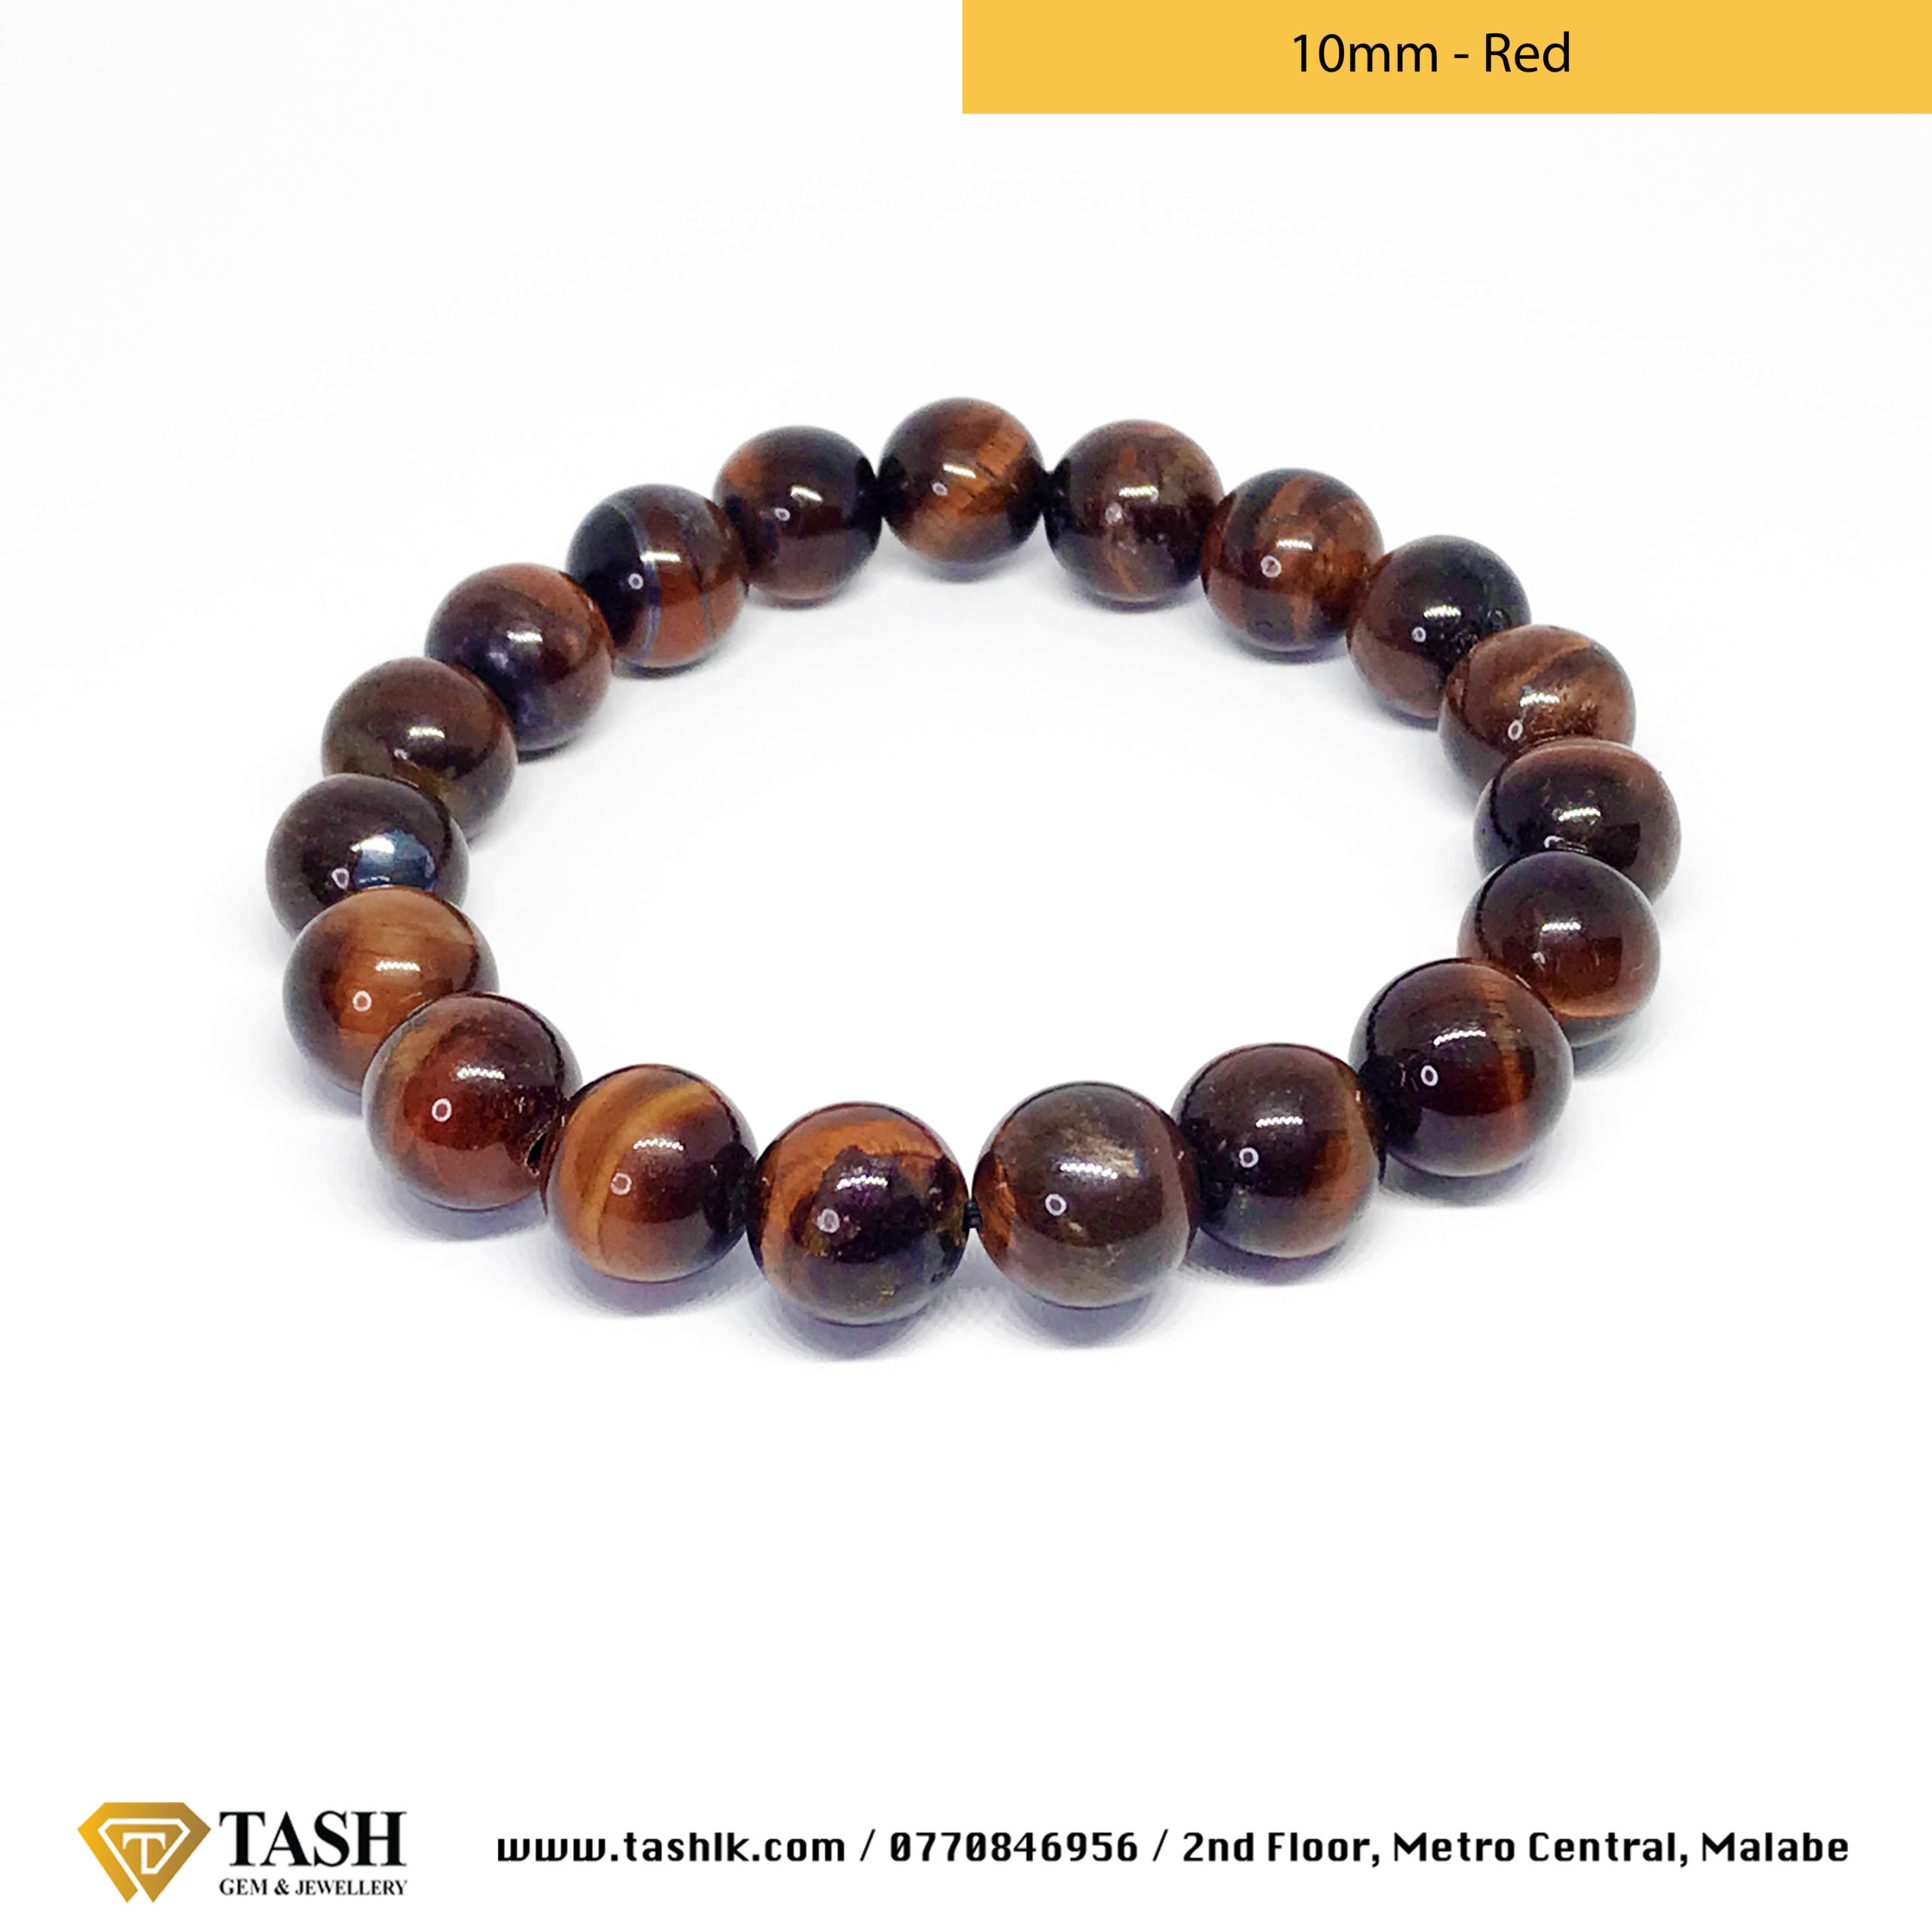 Tigers Eye Bracelet - Red